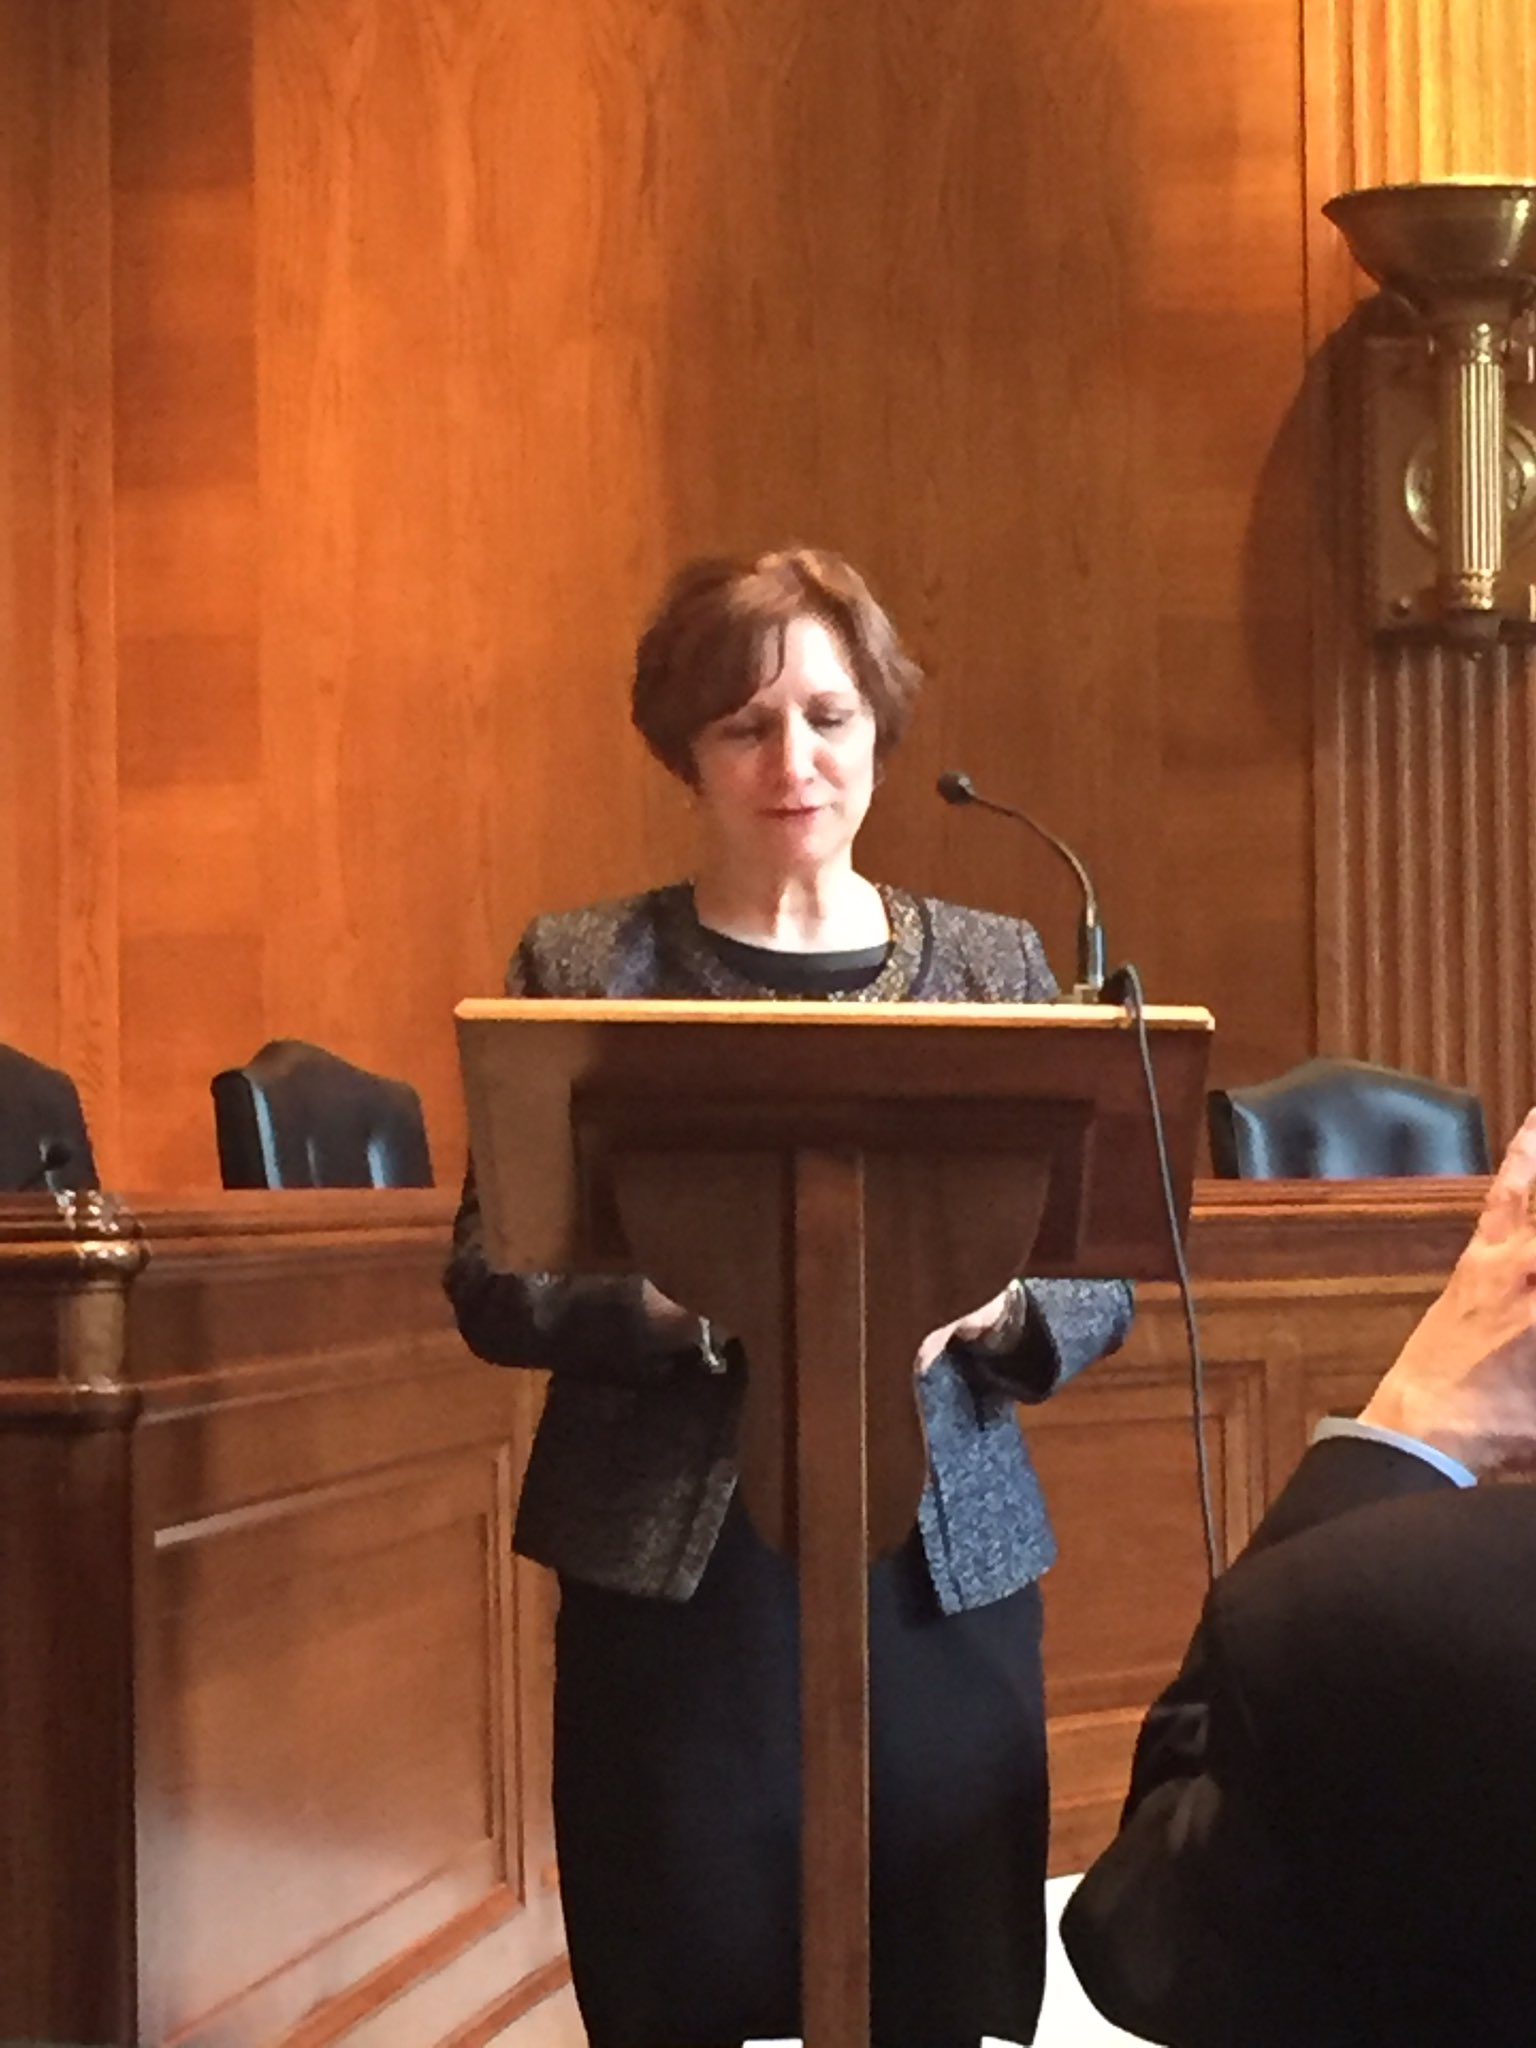 .@RepBonamici highlights how #ESSA's evidence-based provisions and the RELs support actionable #edresearch. #eddata @KnowledgeAll #RELevant https://t.co/erVFLtHHGC